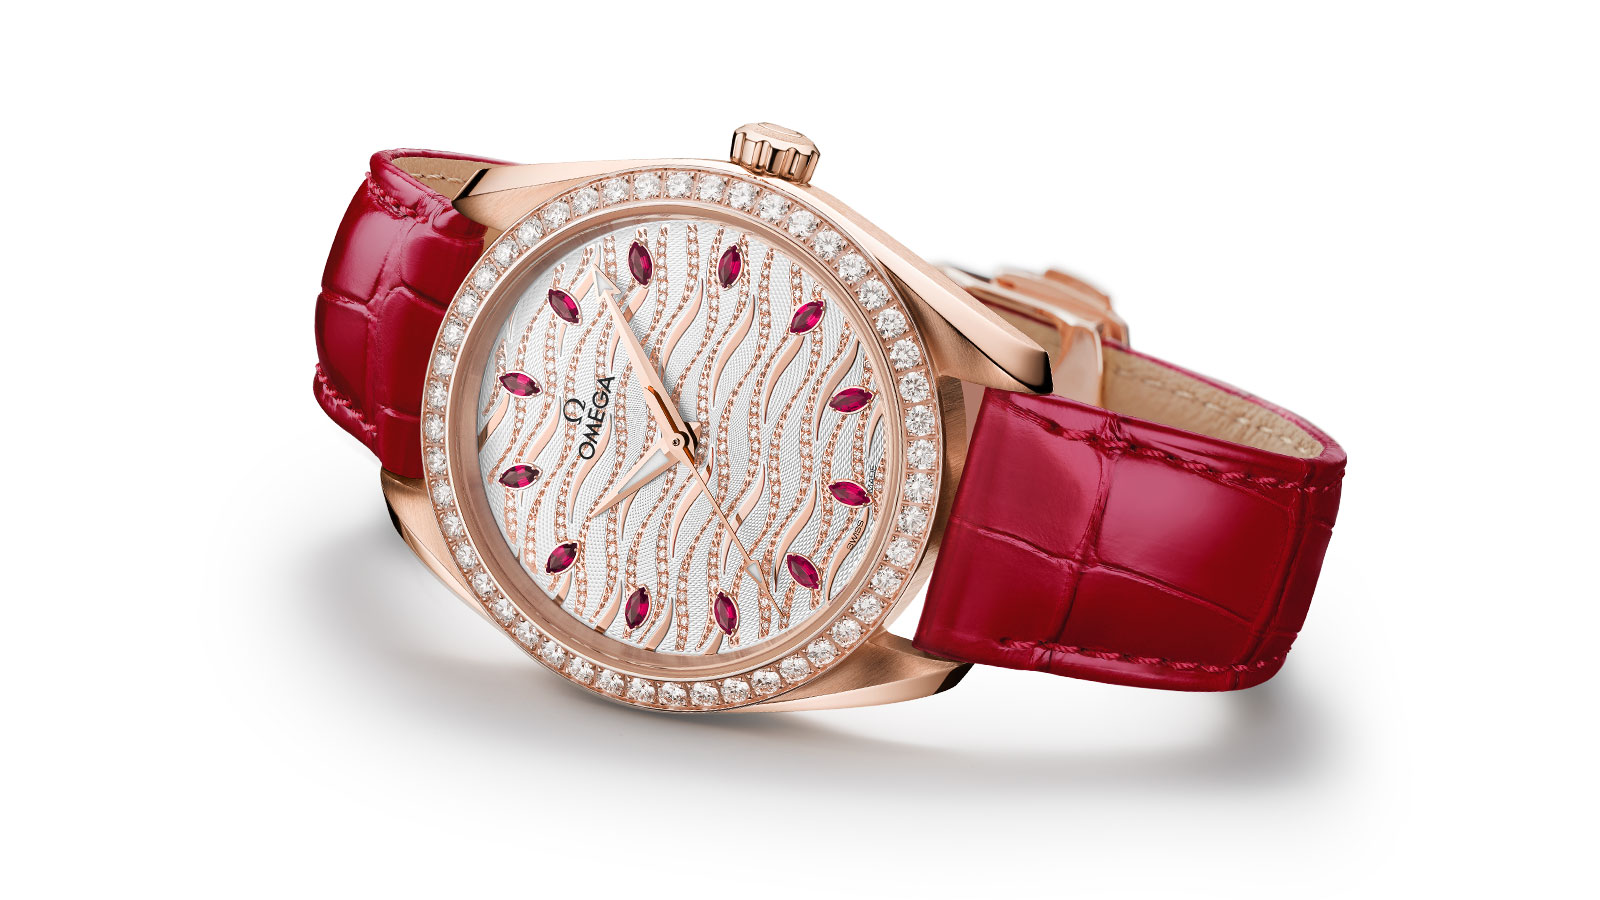 The Seamaster Aqua Terra Jewellery watch in Sedna Gold, mounted with diamonds and rubies